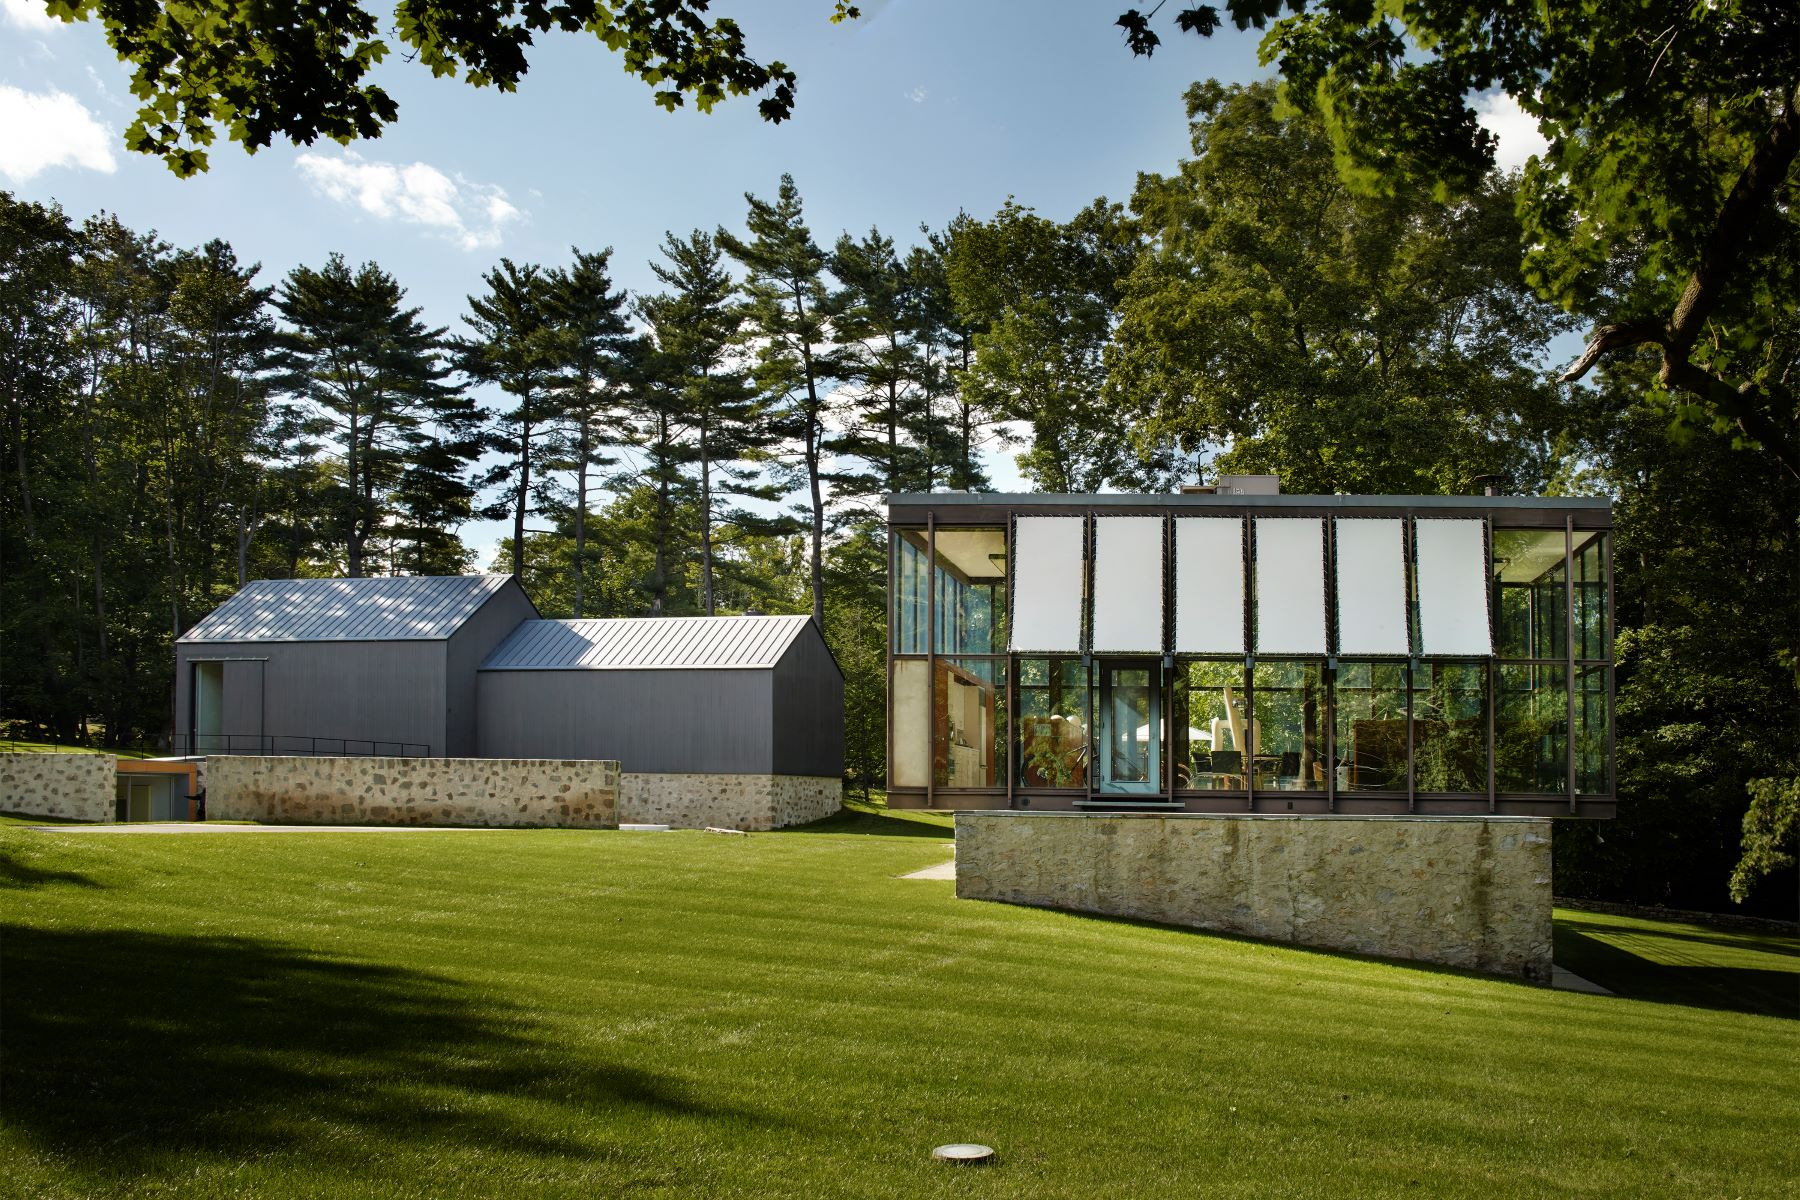 Casa Unifamiliar por un Venta en Stunning Philip Johnson Modern 218 Sleepy Hollow Road New Canaan, Connecticut 06840 Estados Unidos